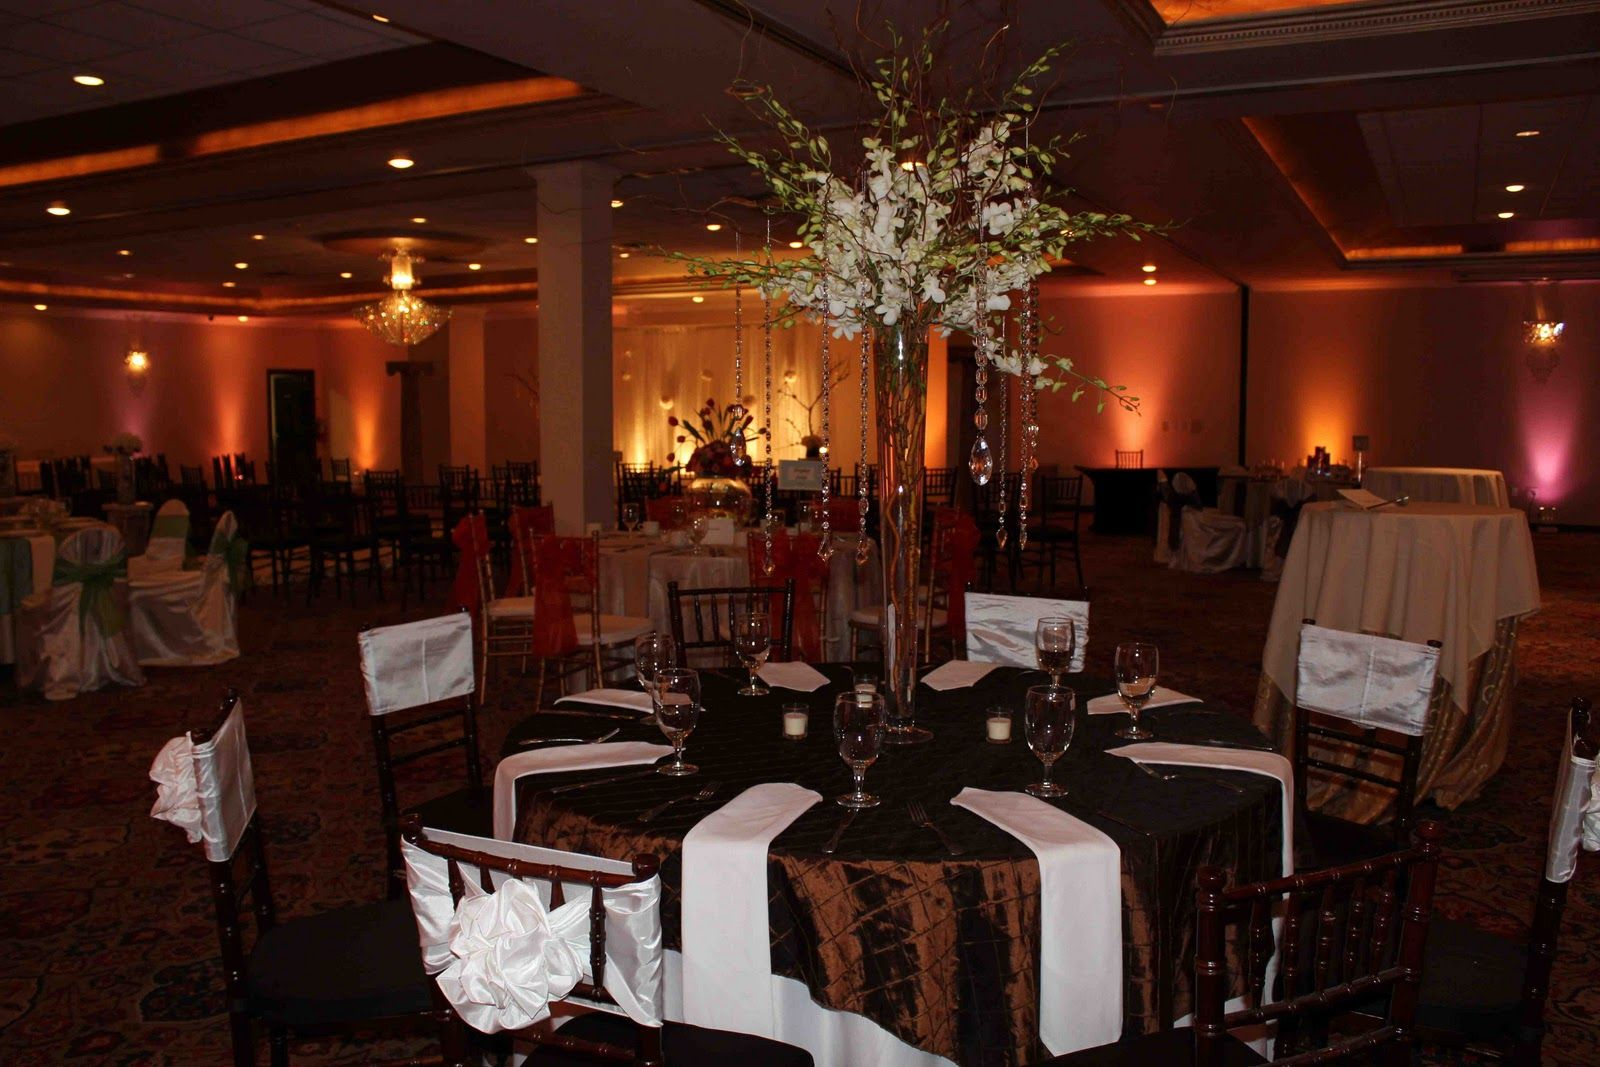 Beauty Cheap and Affordable Wedding Venues Houston - Affordable ...